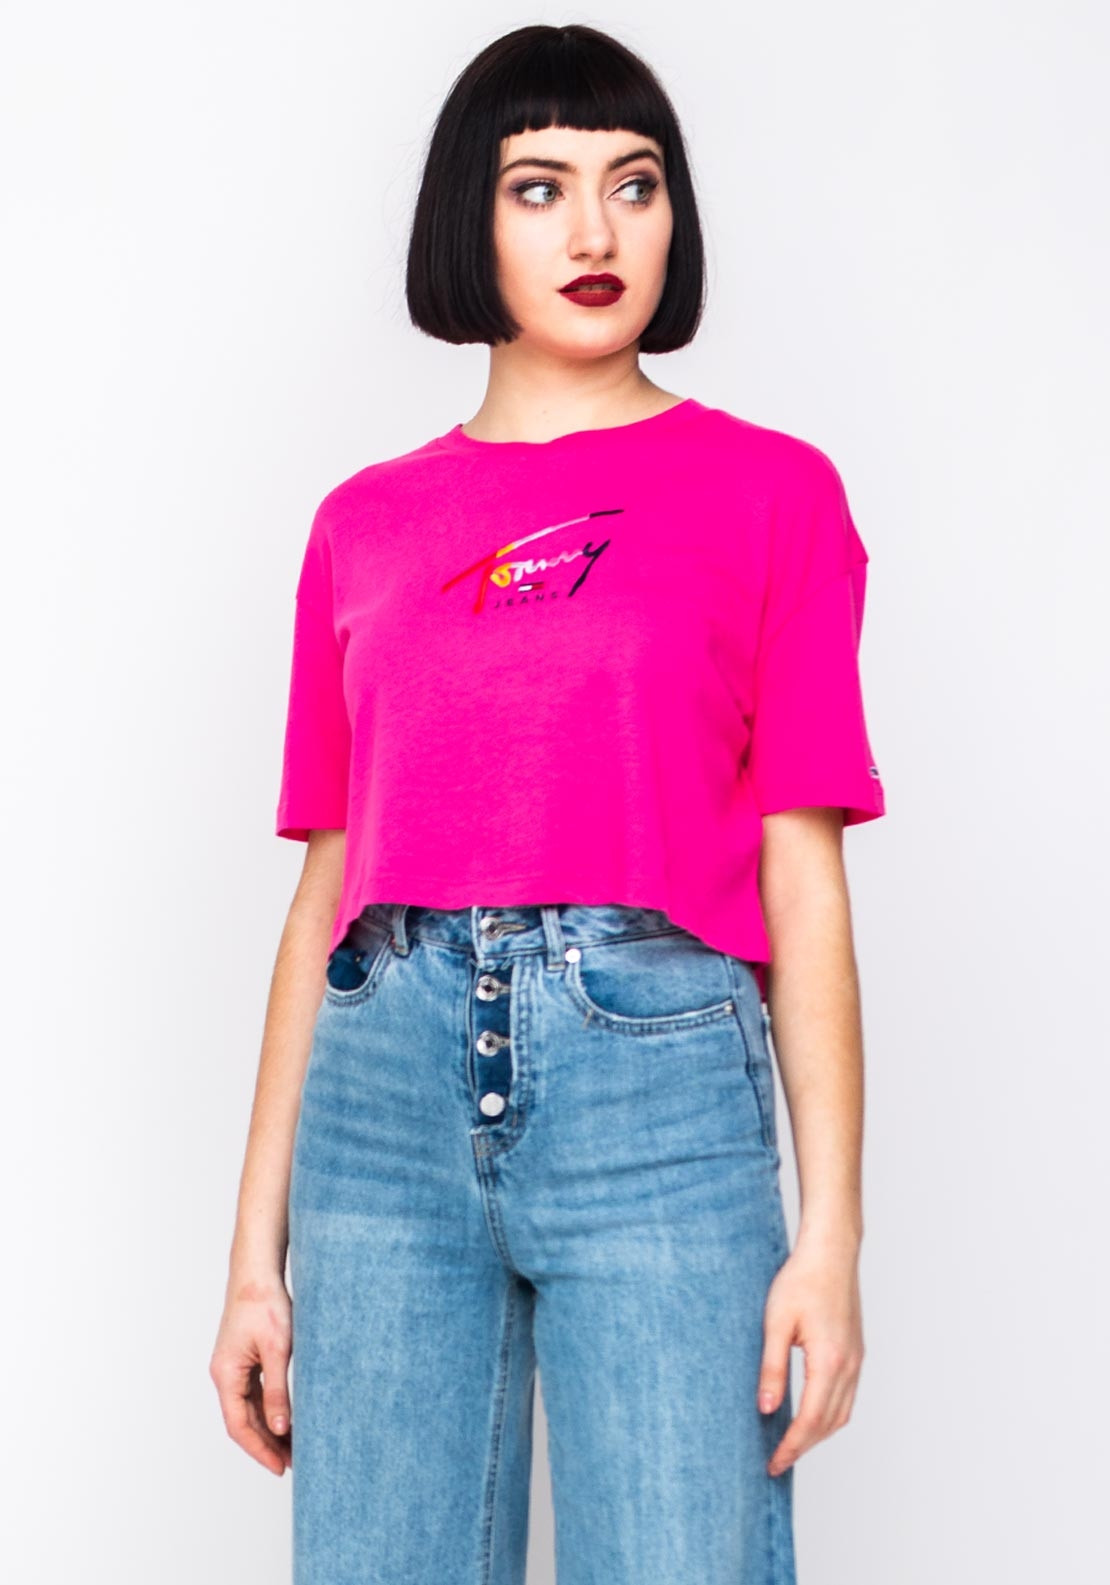 82fa0554 Tommy Jeans Womens Script Crop T-Shirt, Pink. Be the first to review this  product